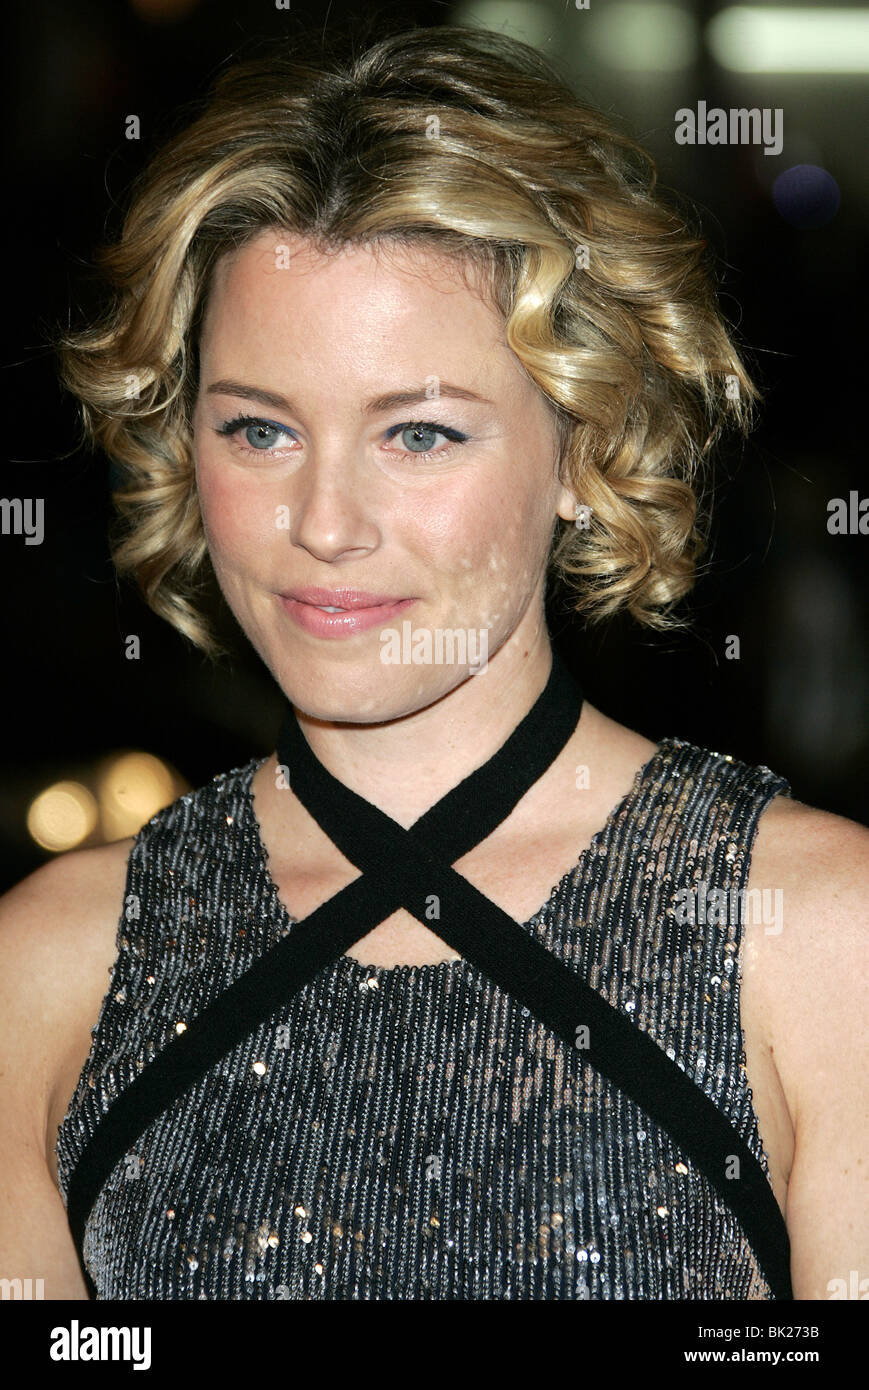 ELIZABETH BANKS SMOKIN ACES WORLD PREMIERE GRAUMANS CHINESE HOLLYWOOD LOS ANGELES USA 18 January 2007 - Stock Image